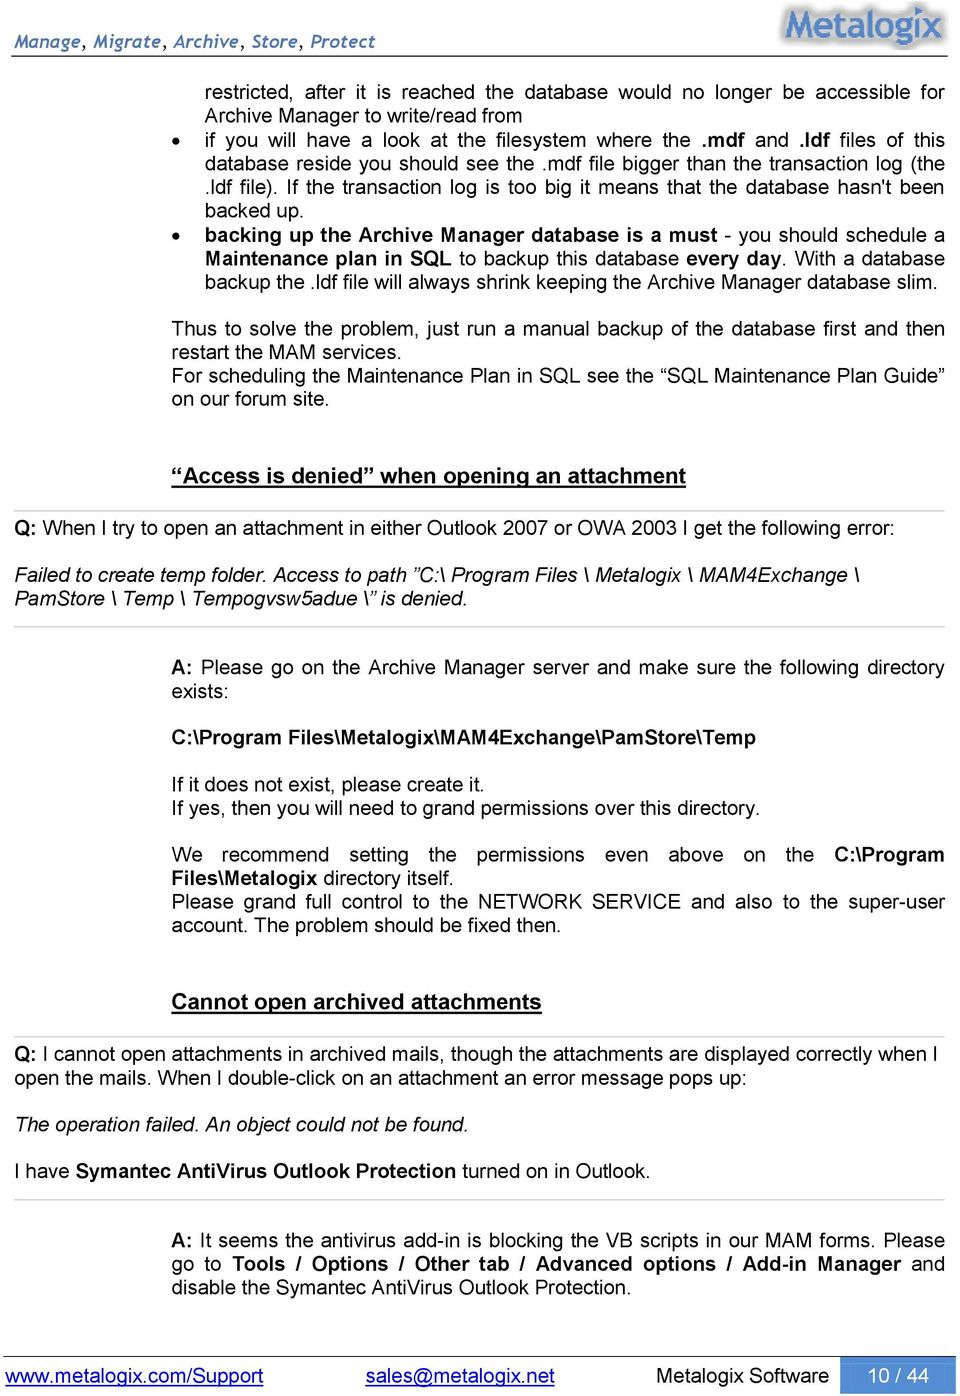 Archive Manager Exchange Edition MS Outlook Addin Troubleshooting - PDF